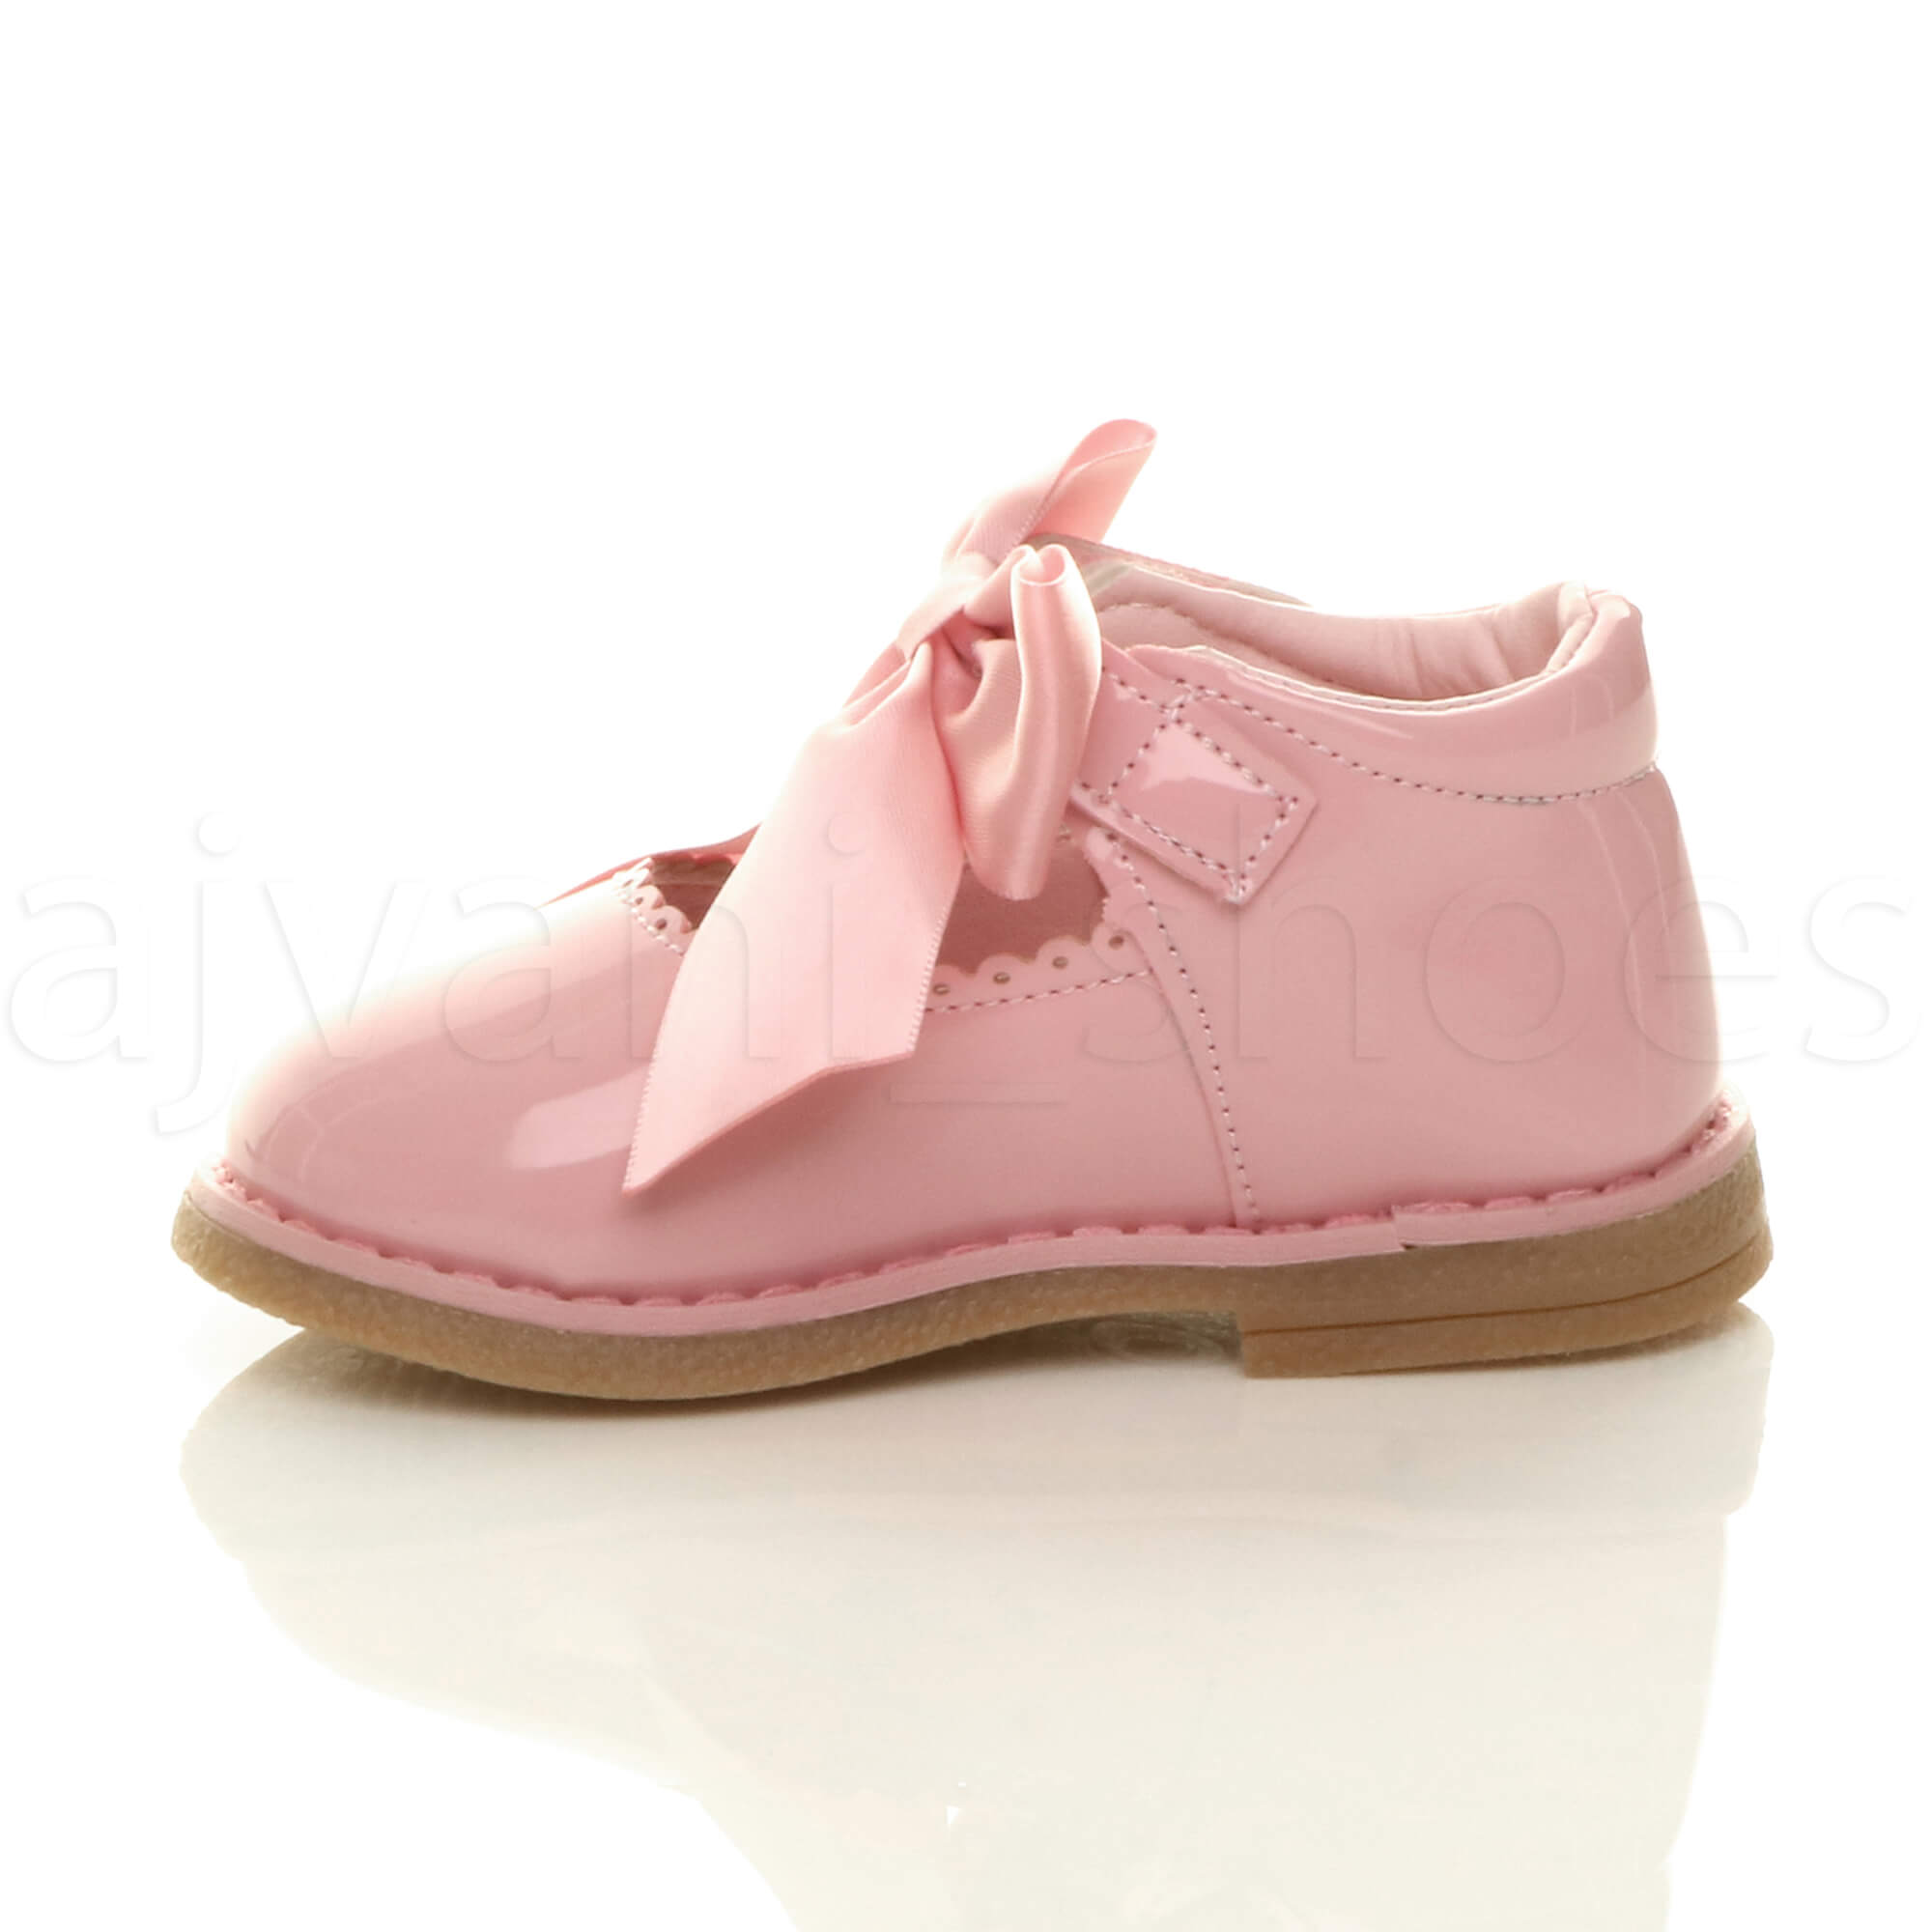 GIRLS-KIDS-CHILDRENS-INFANT-MARY-JANE-SCALLOPED-RIBBON-BOW-SHOES-SIZE